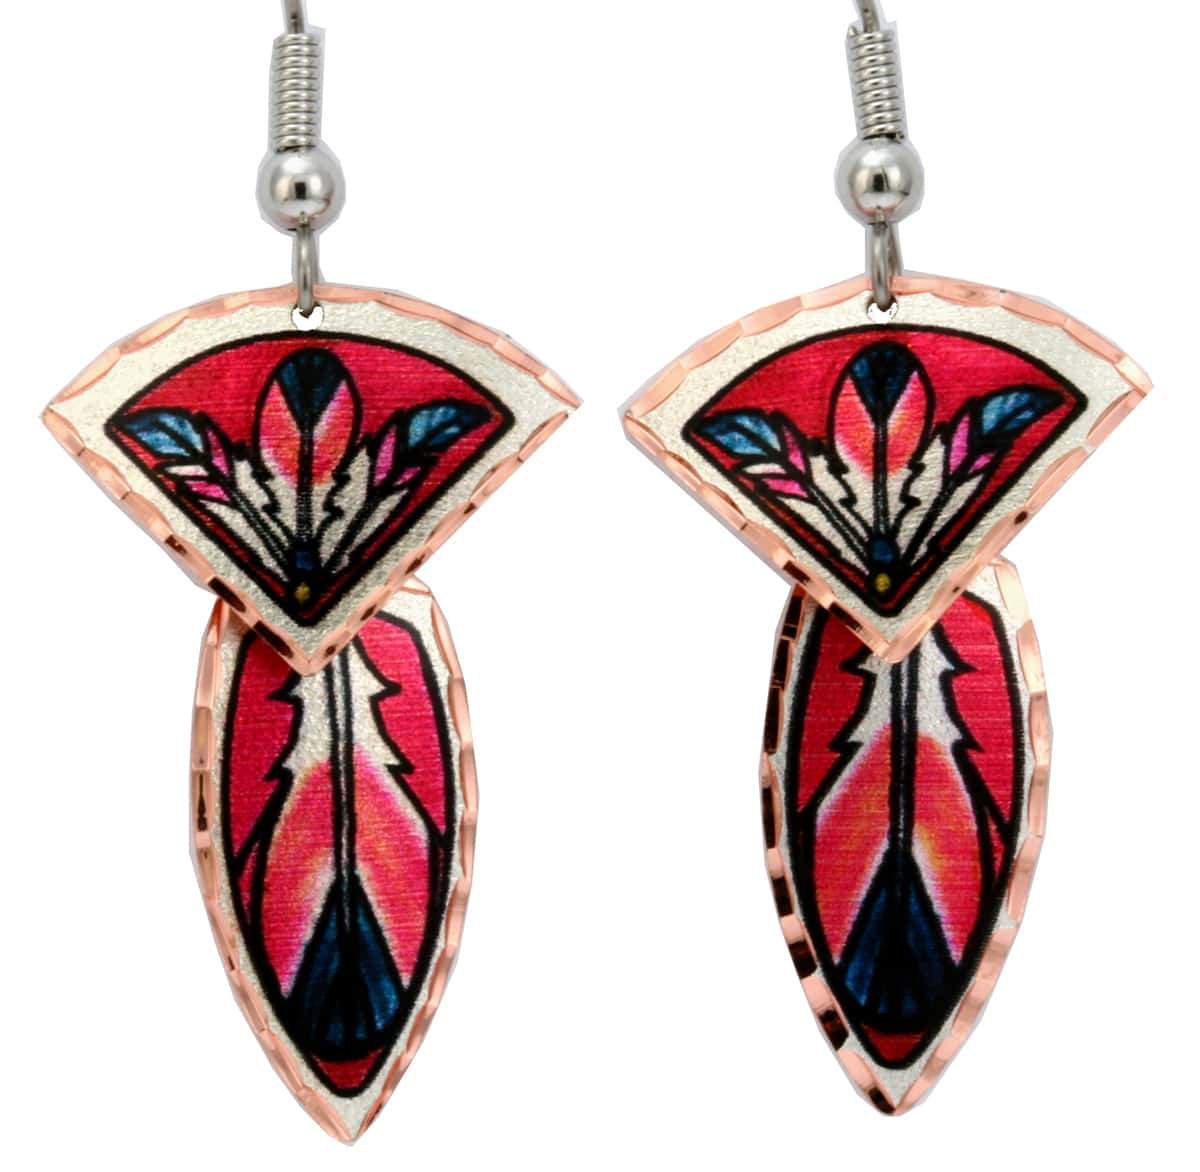 Dangle Earrings created in Feather Artwork with Indian Red Bacground